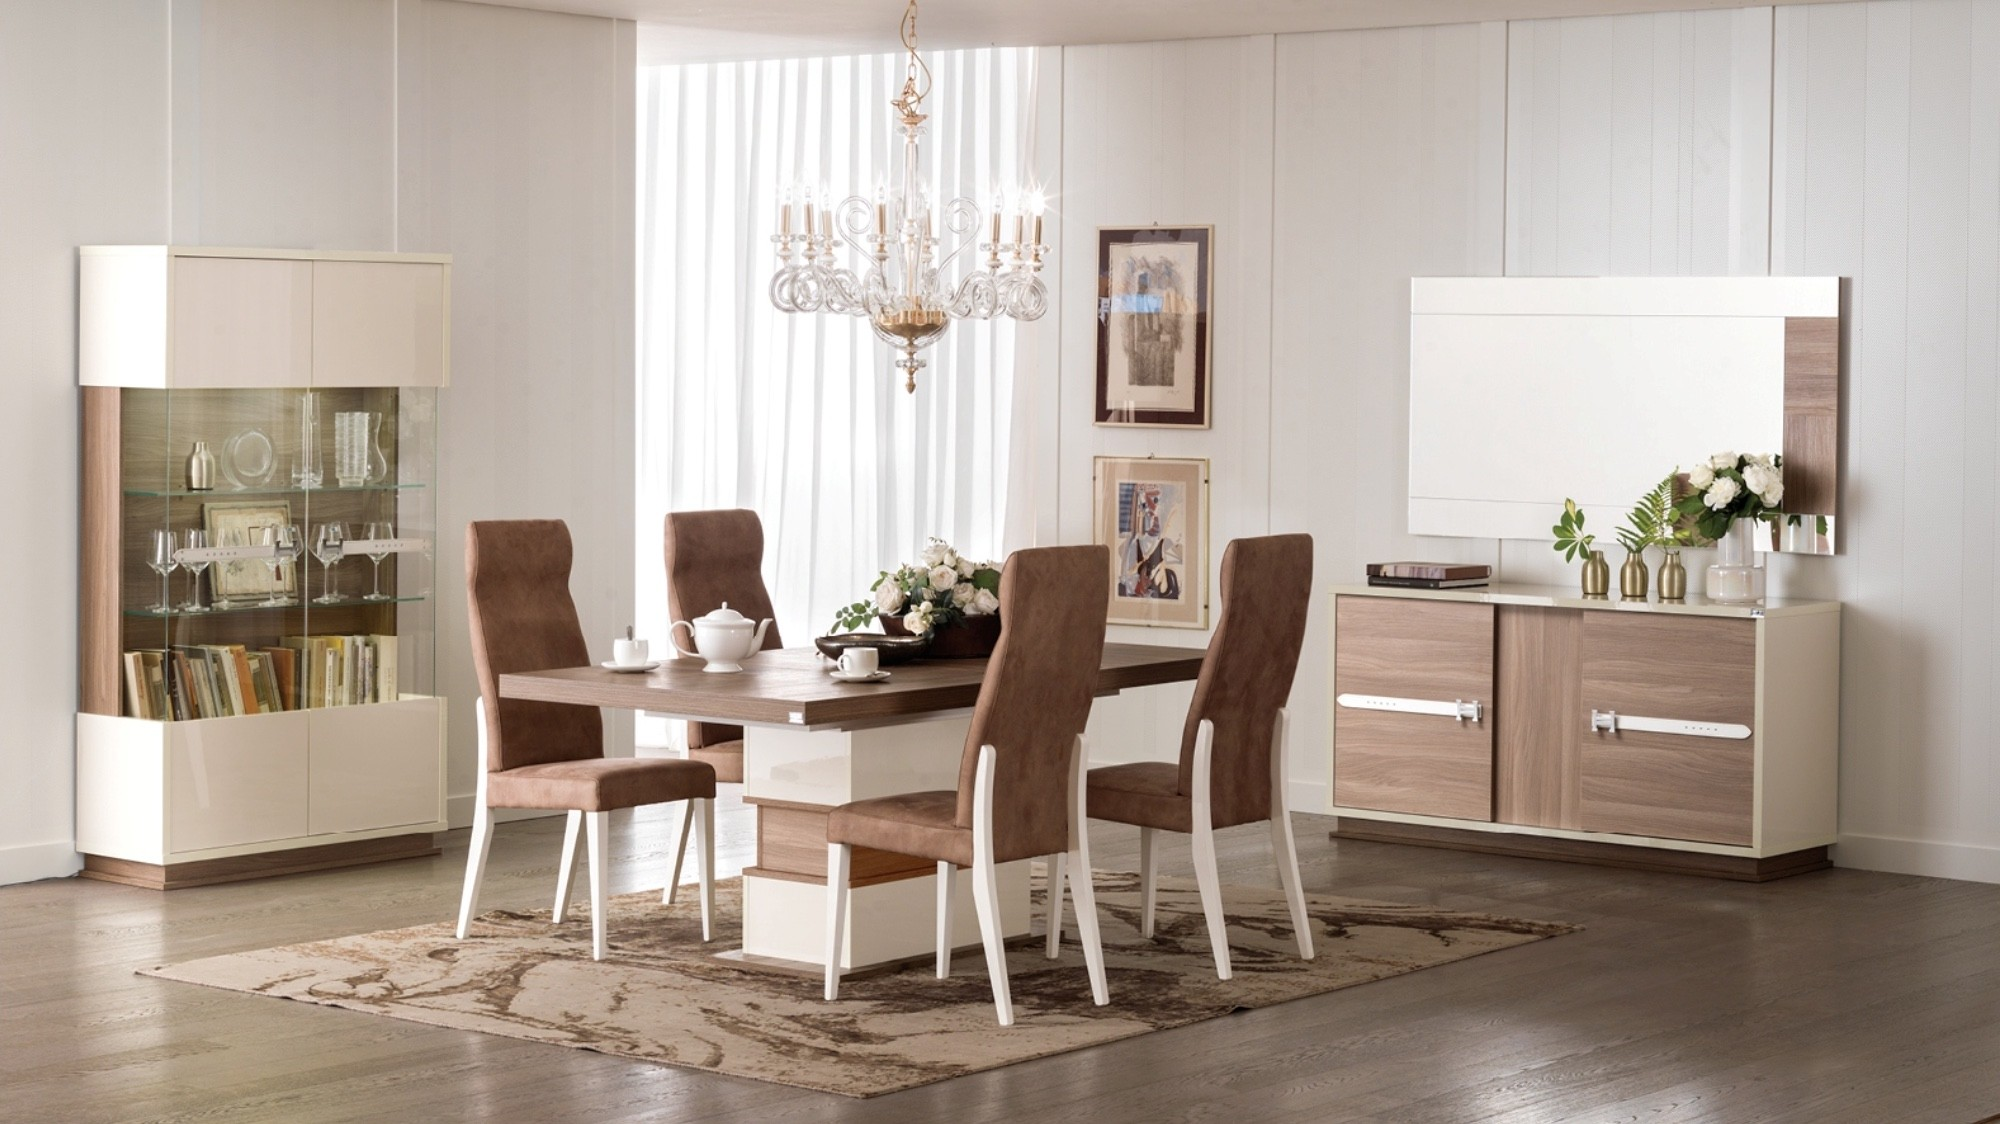 Living Room Sets Boston Ma evolution dining room setesf (made in italy), buy from nova